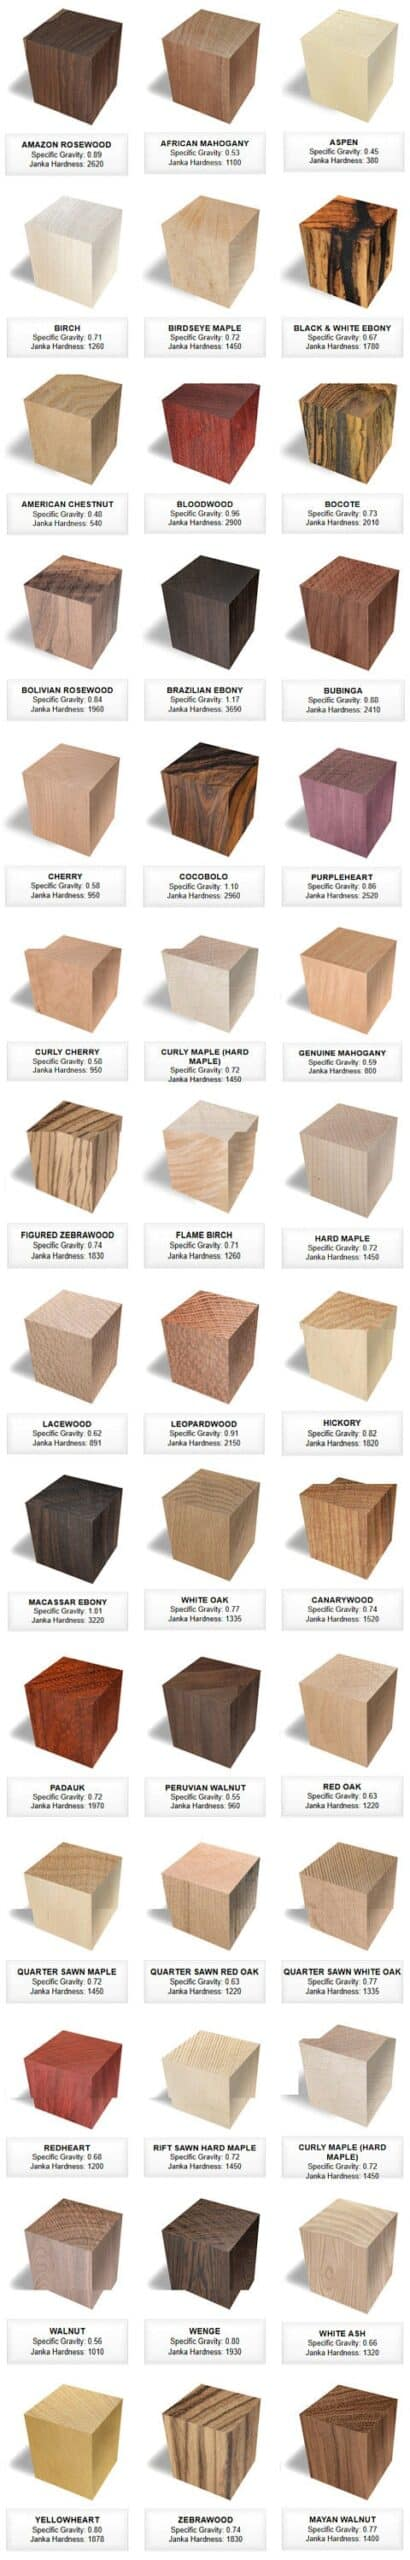 Solid Hardwood Types